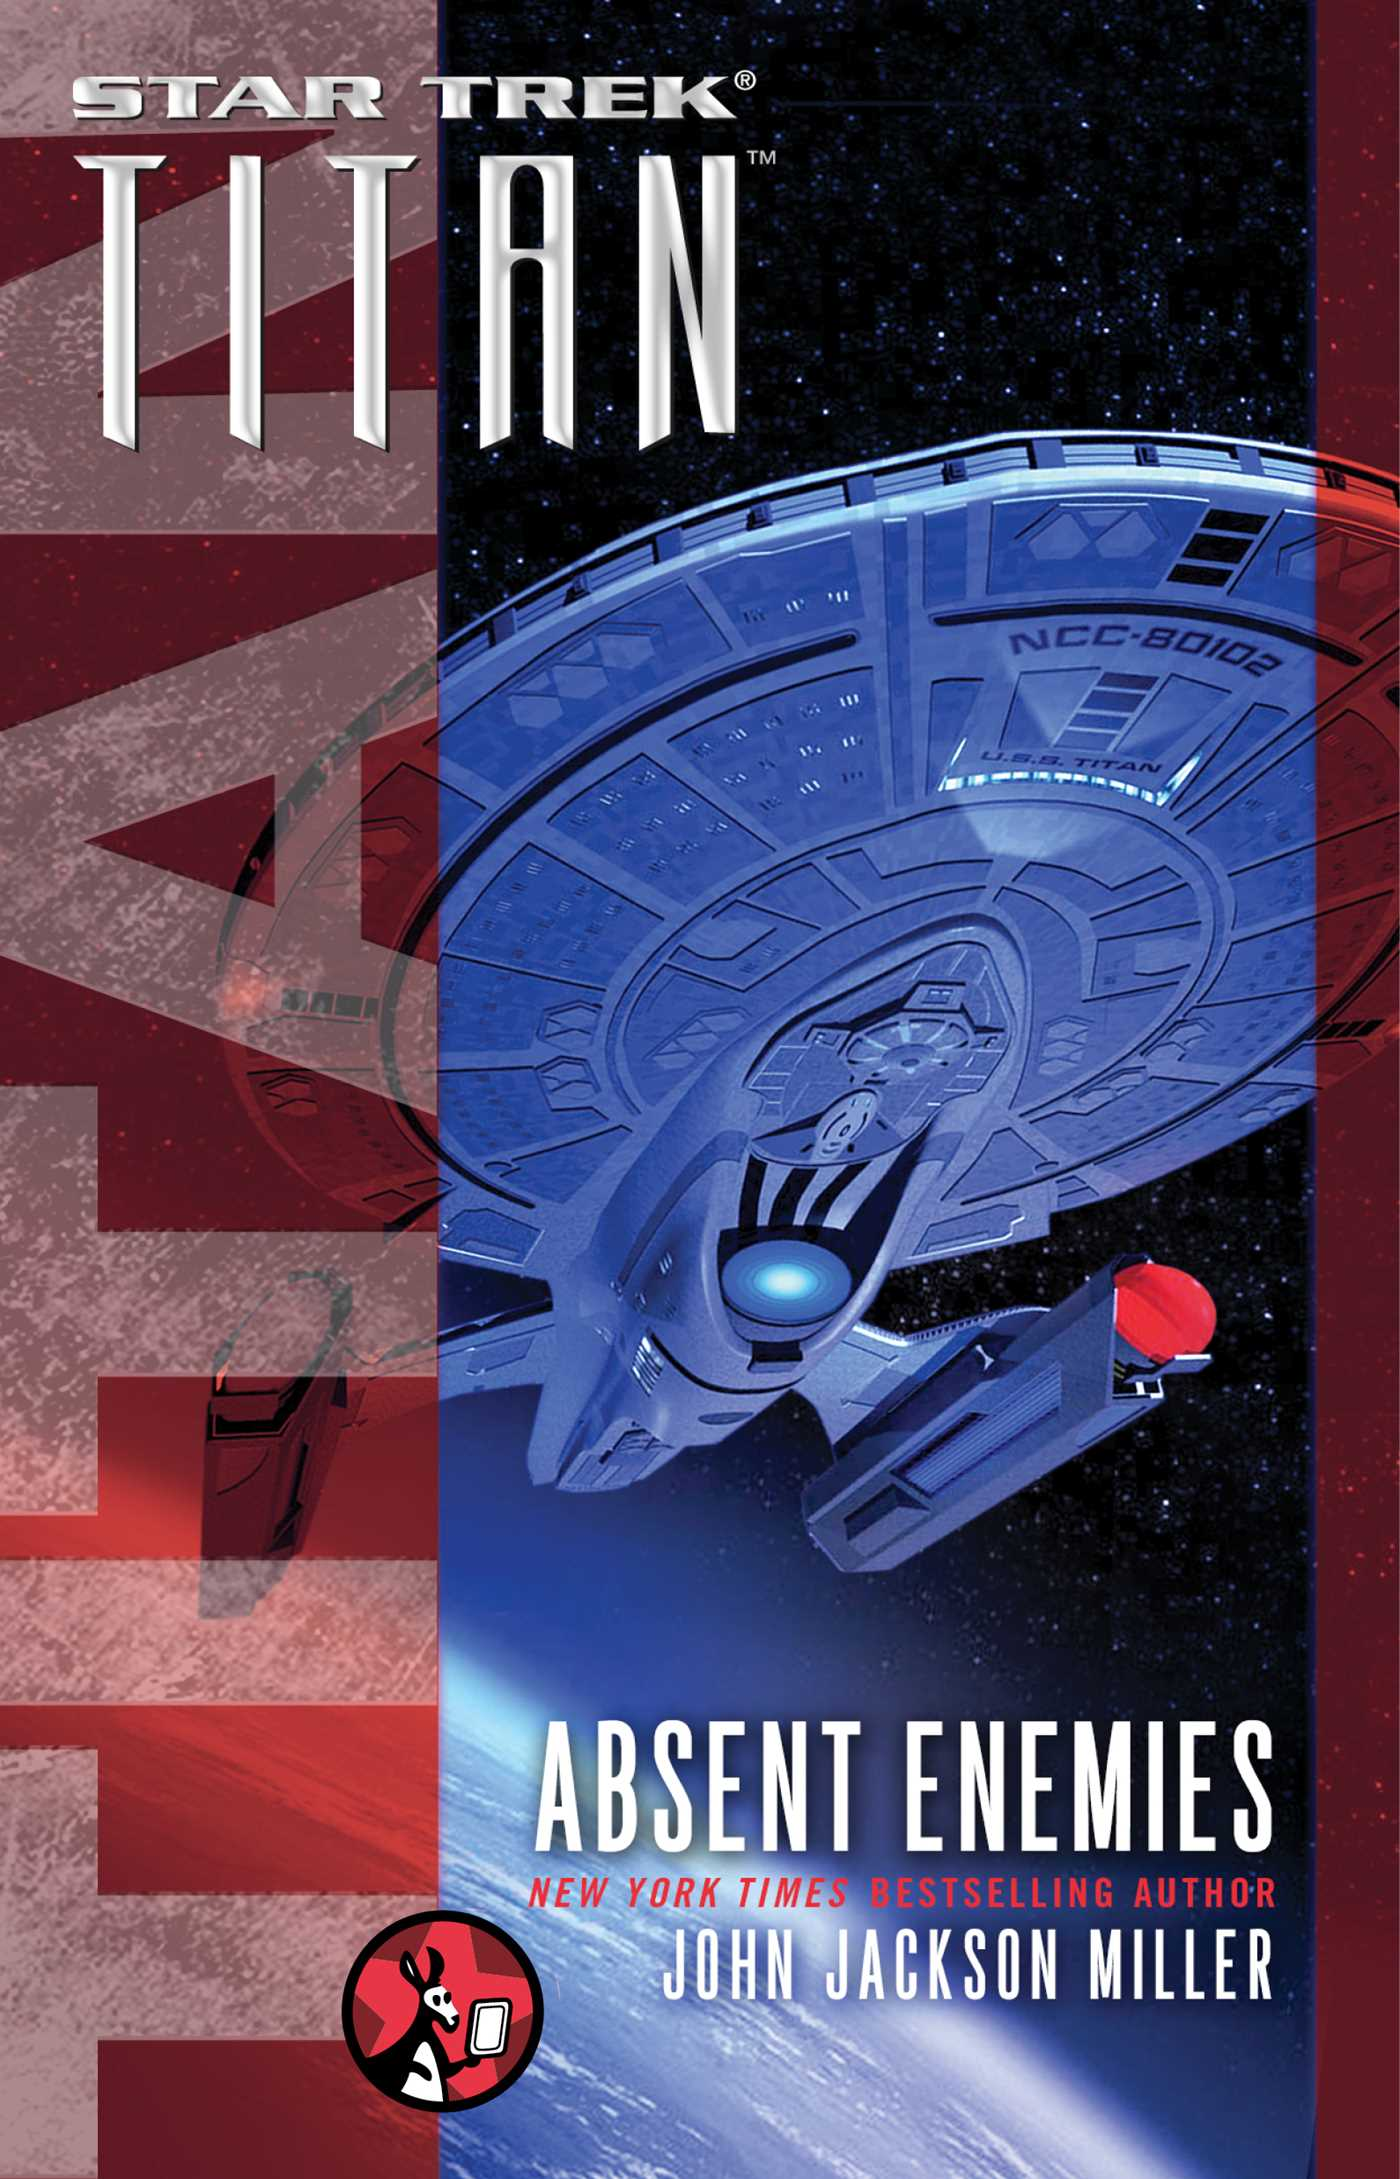 Star trek titan absent enemies 9781476762999 hr